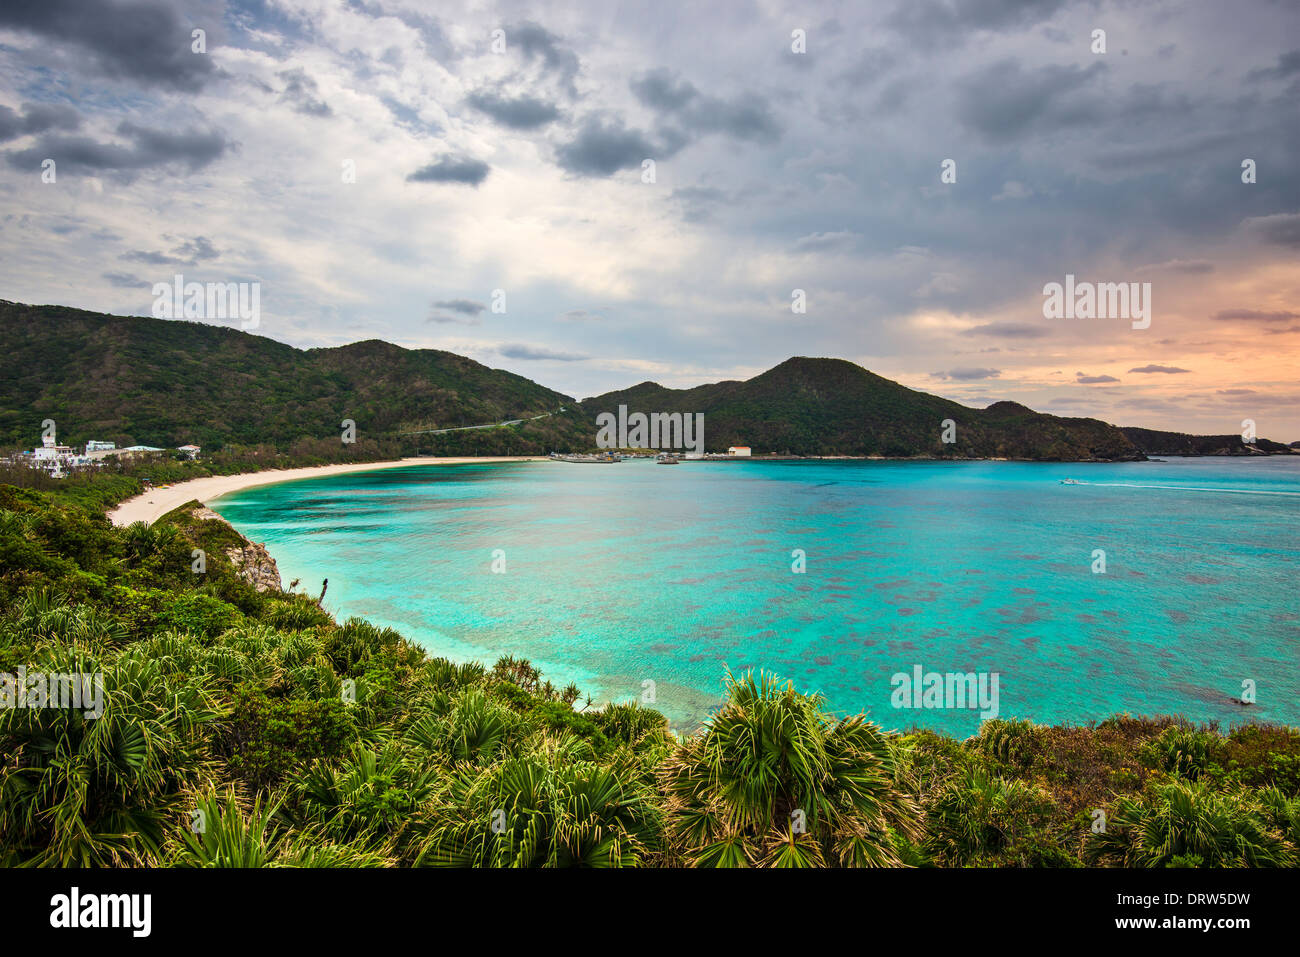 Aharen Beach on Tokashiki Island, Okinawa, Japan. - Stock Image